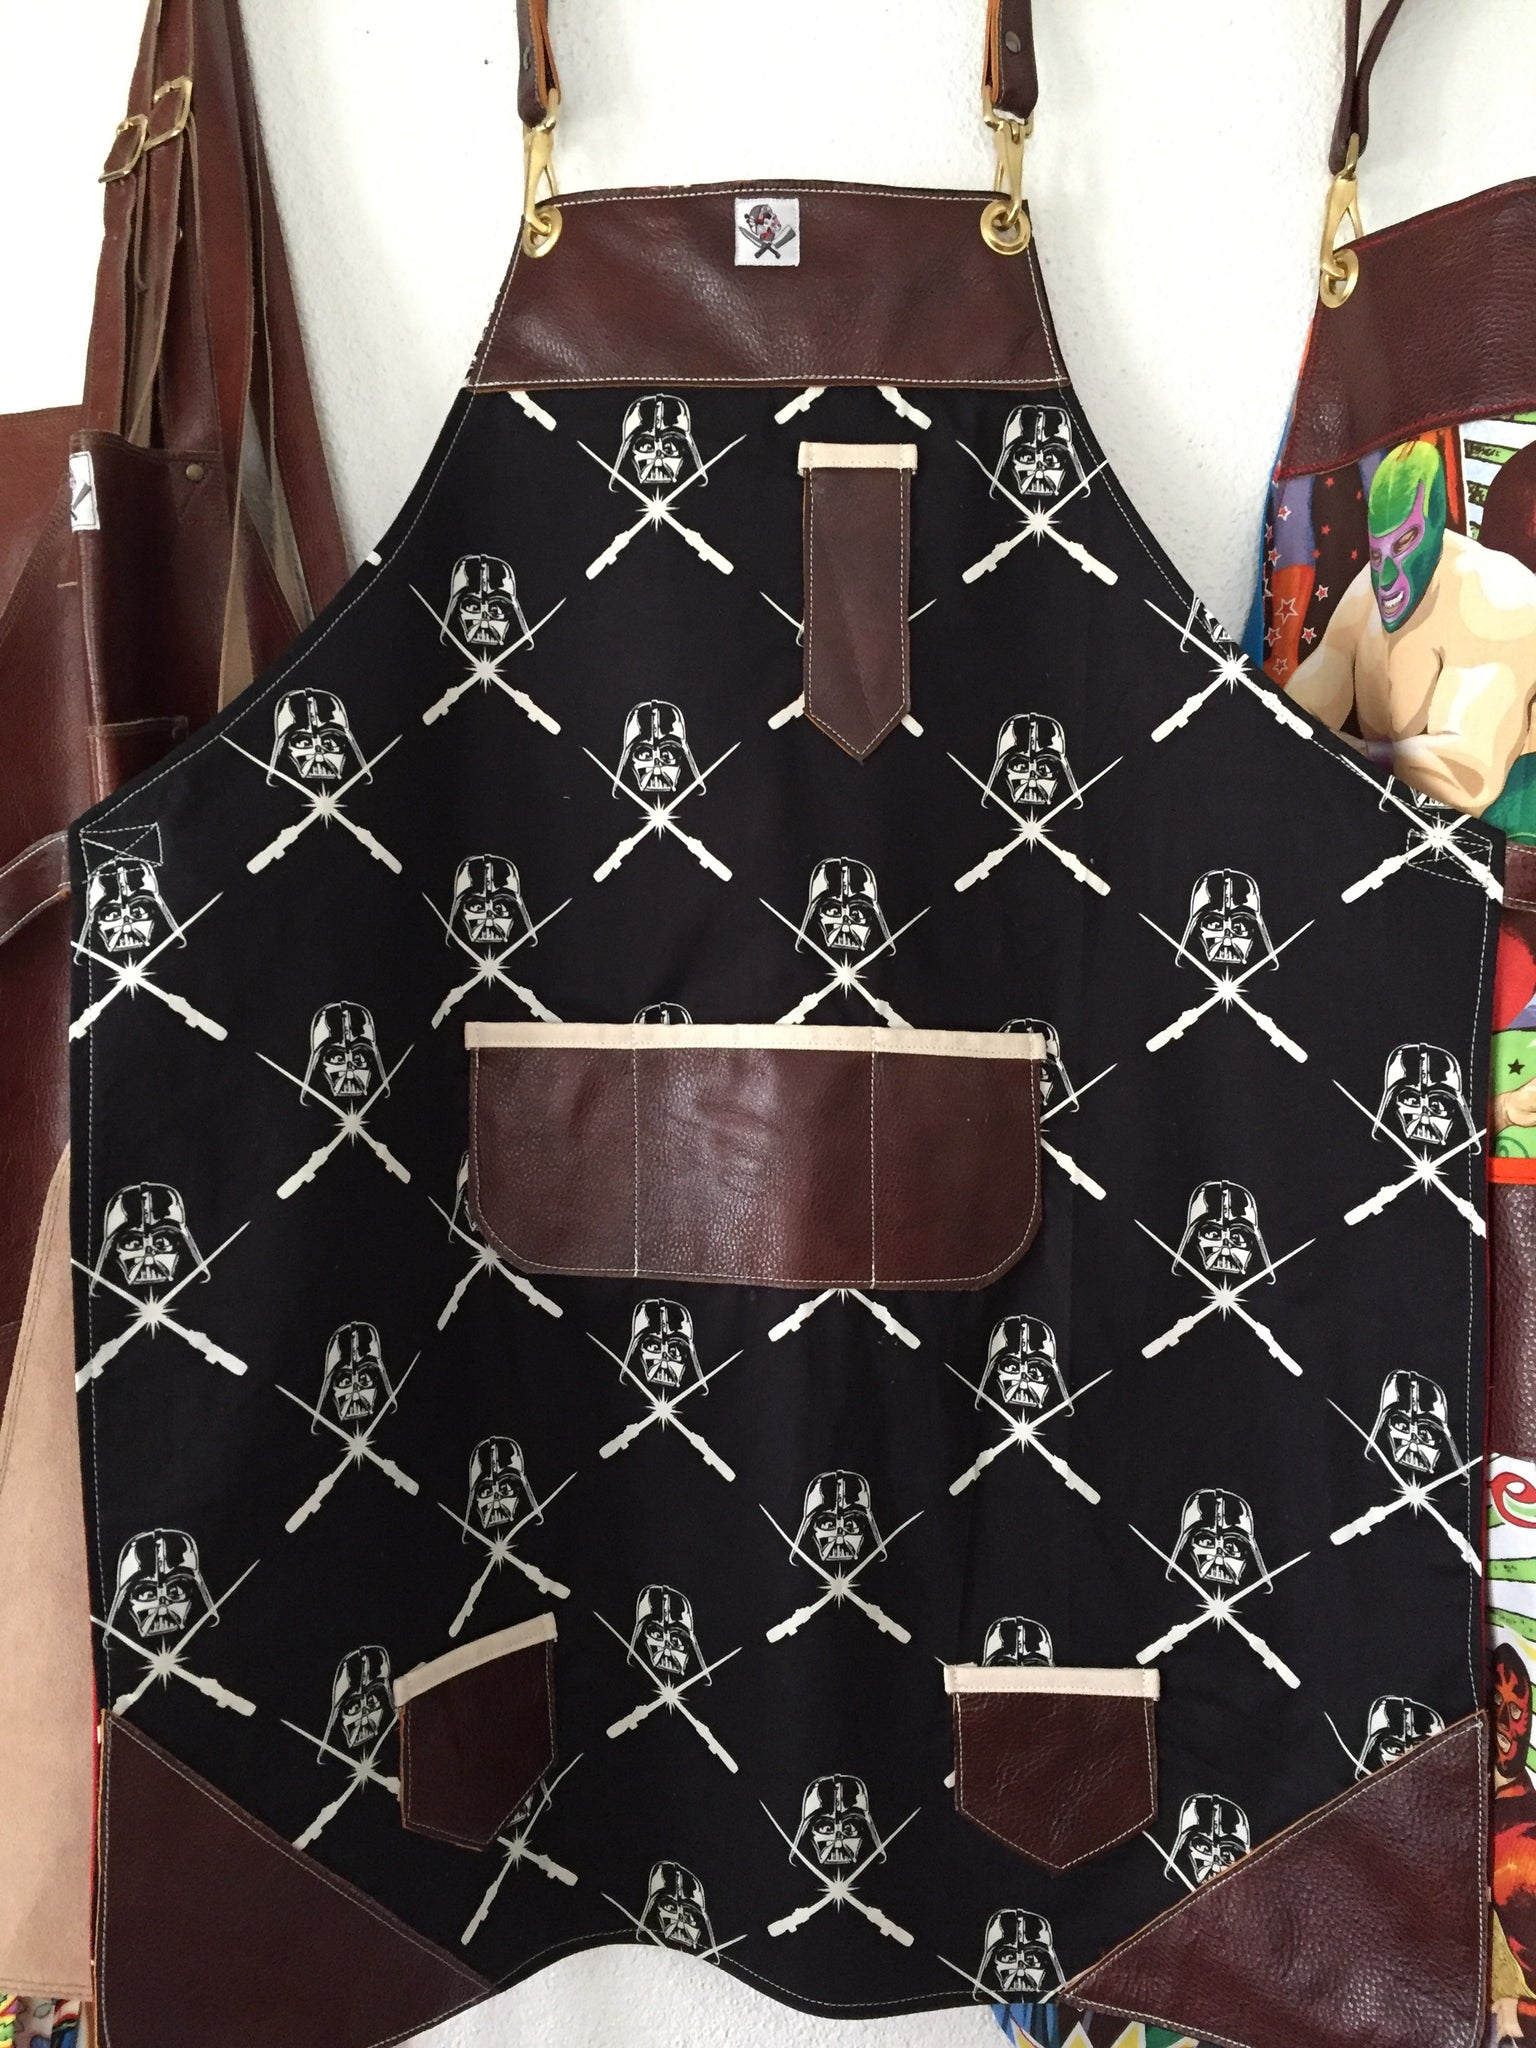 Darth Vader makes me happy apron (Star Wars)